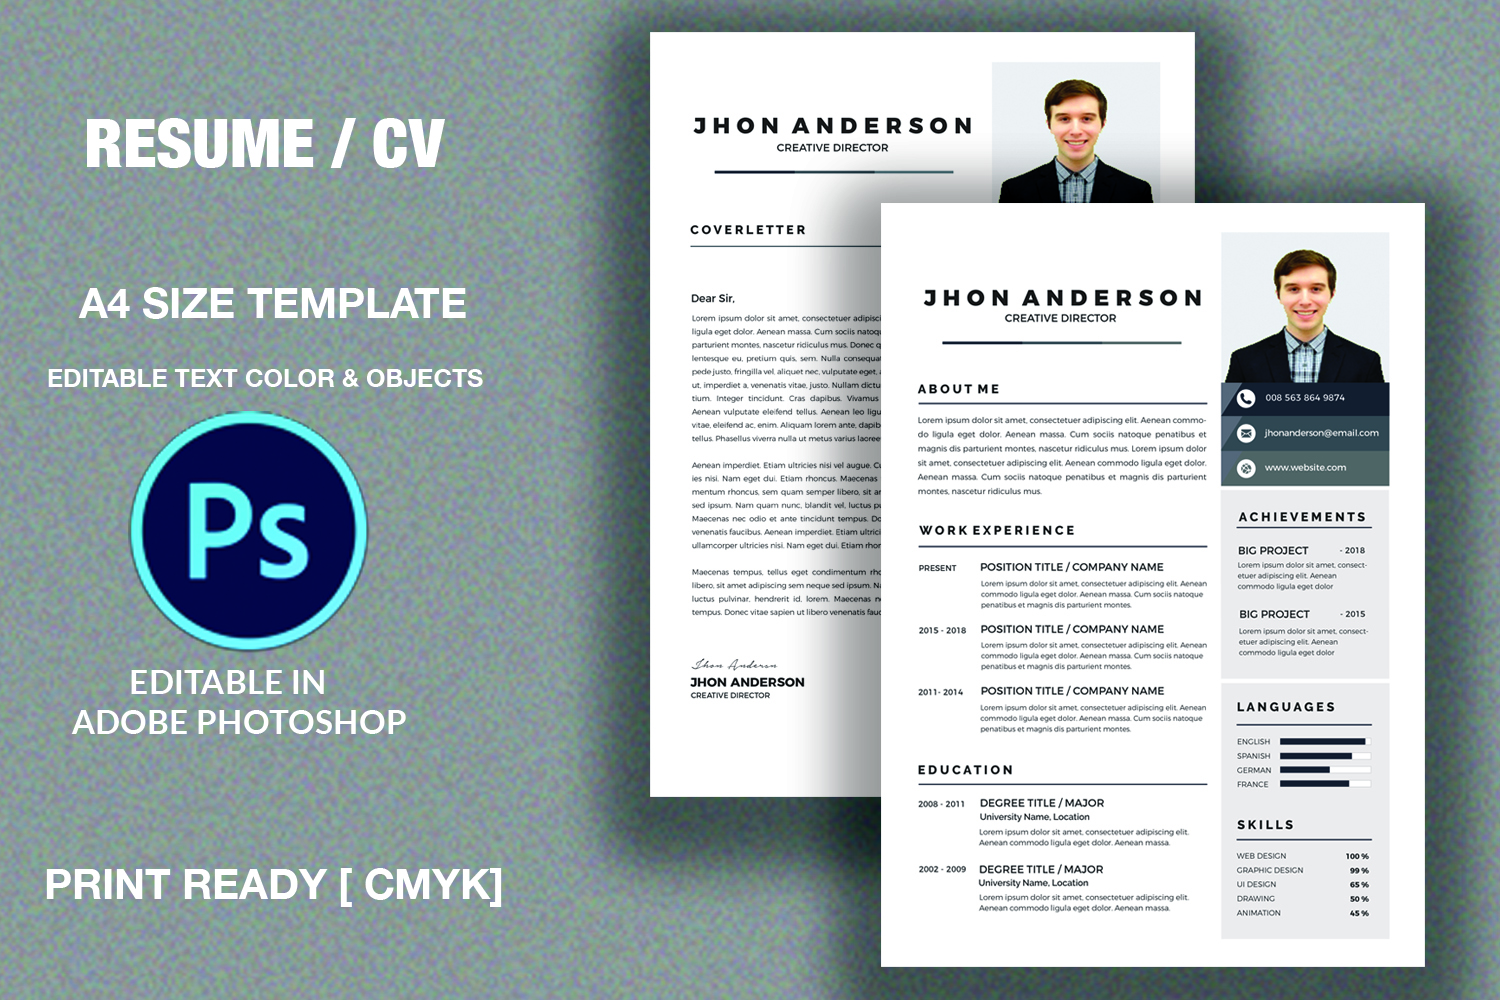 Resume /CV Template  example image 2